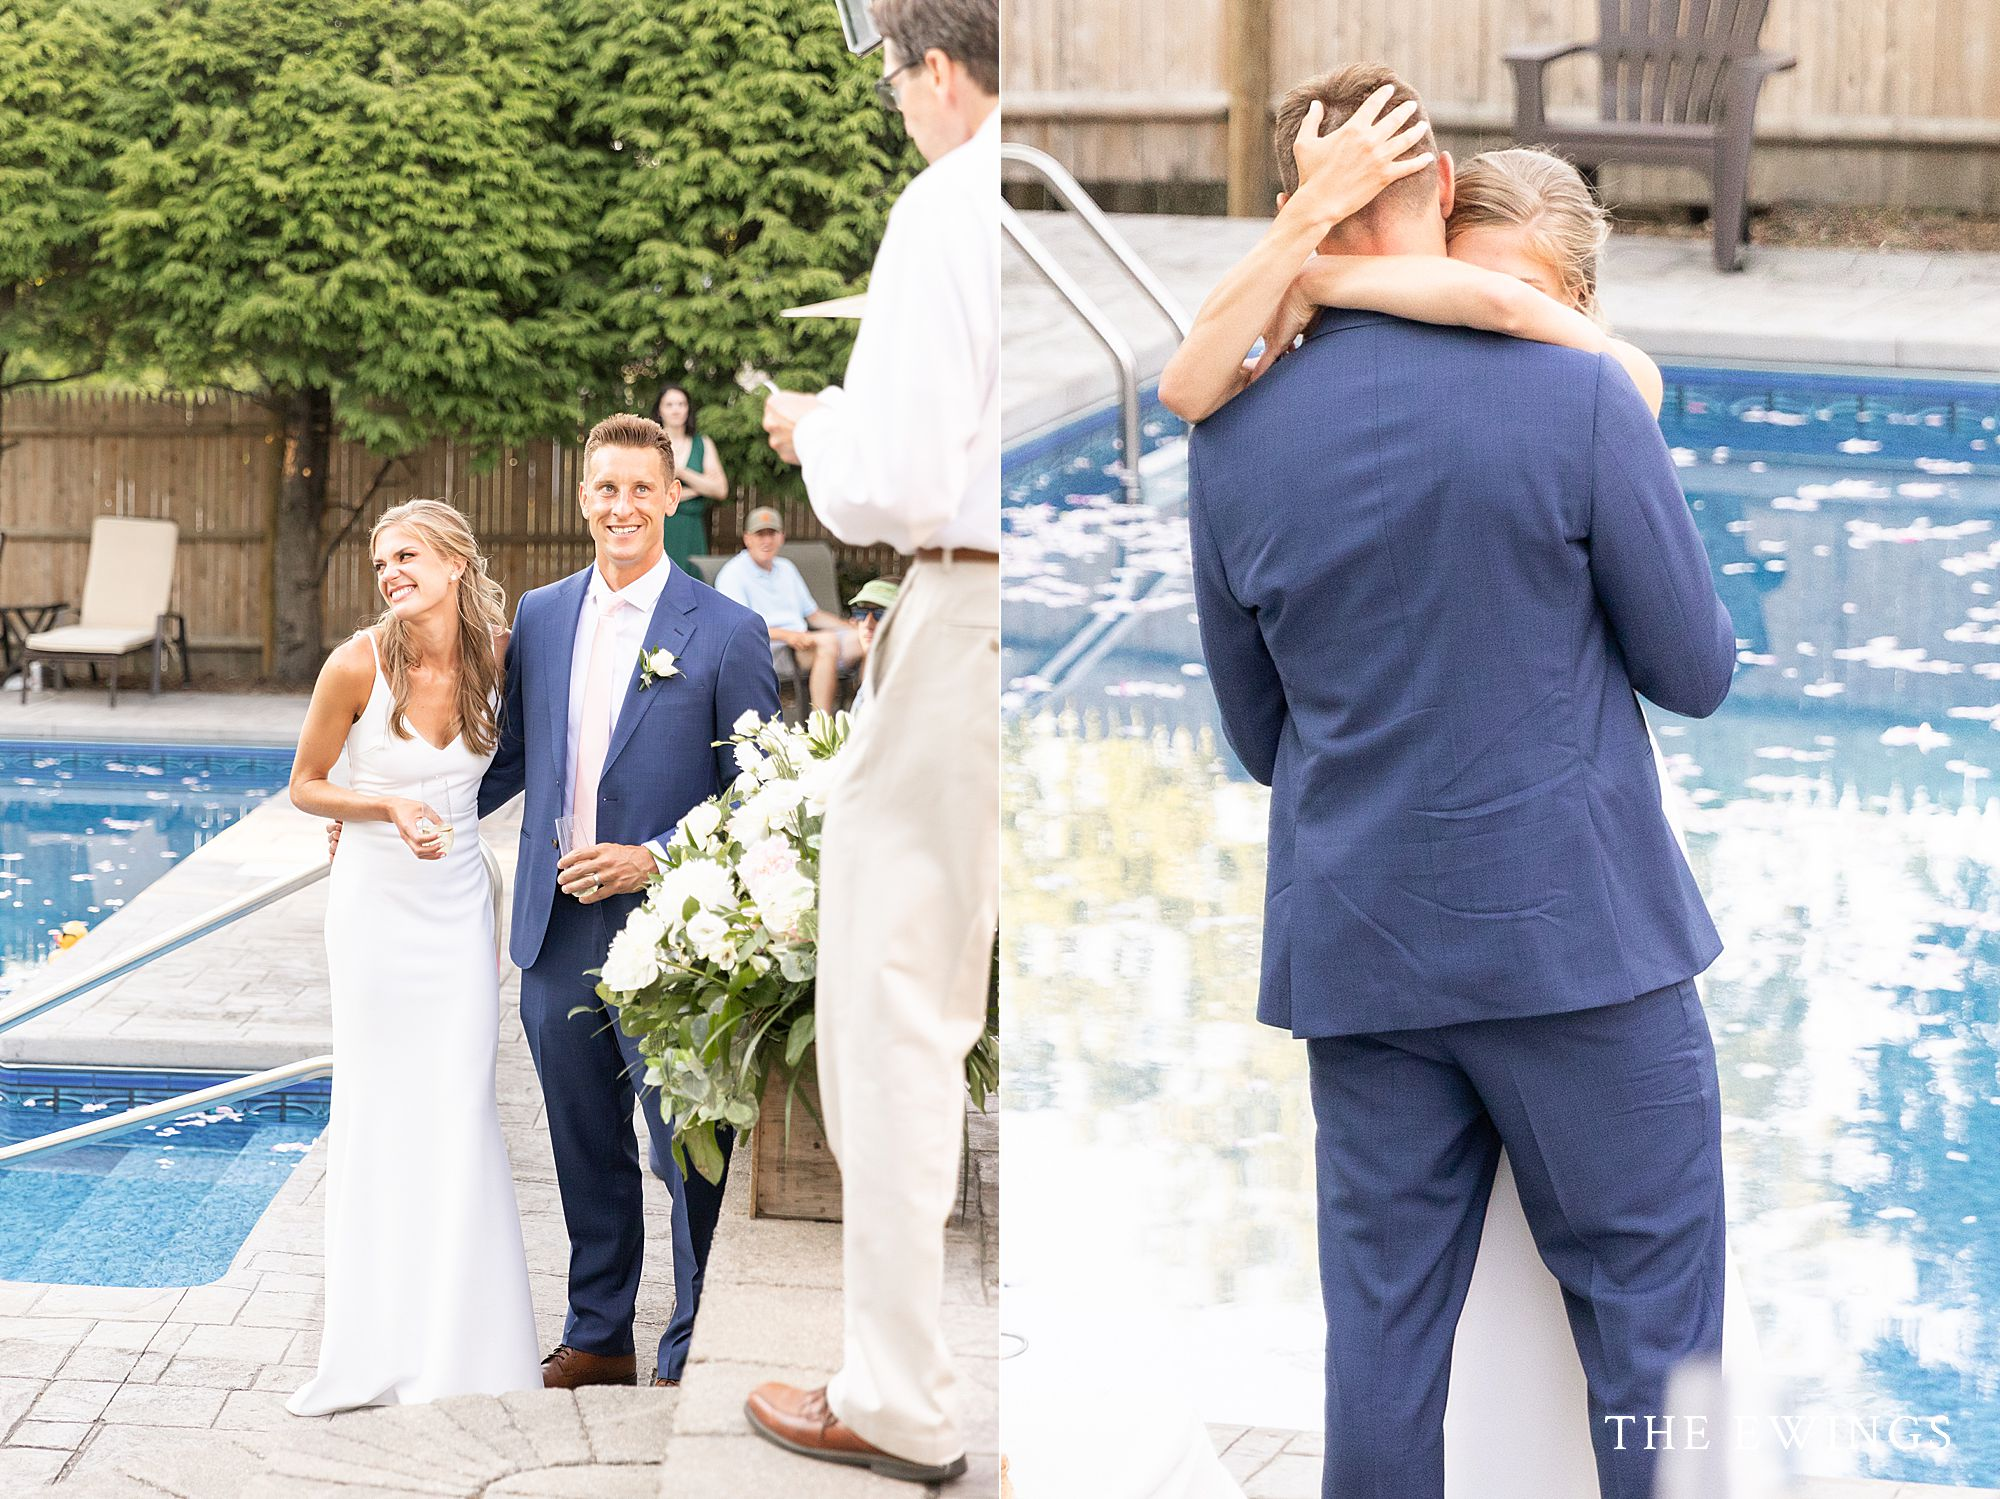 Backyard wedding with just their favorite people in Quincy MA, south shore.